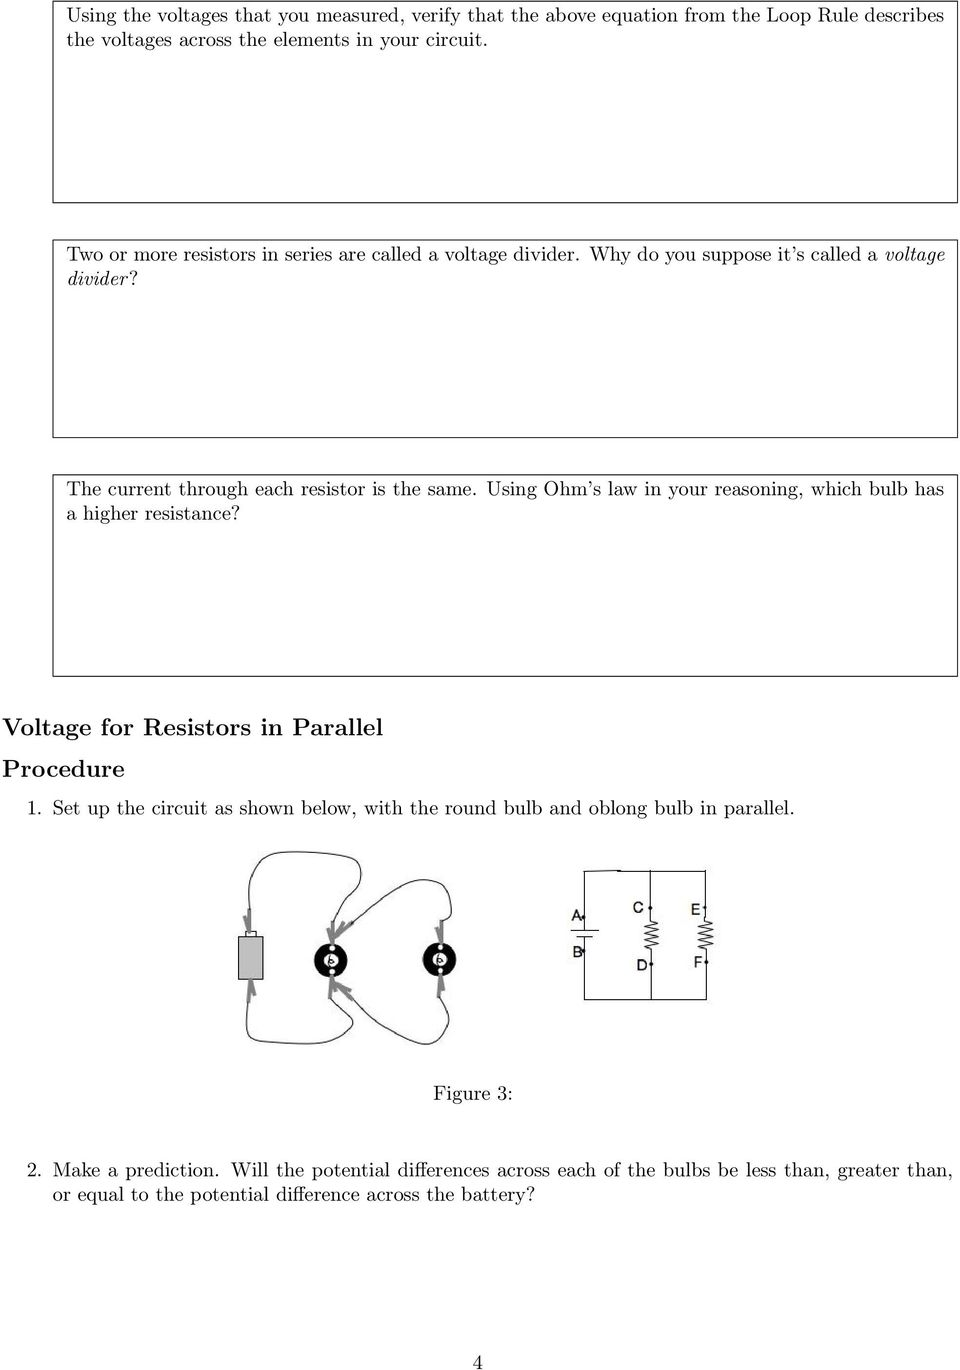 Voltage Divider Rule Build Circuit Kirchhoff S Law And Rc Circuits Pdf Using Ohm In Your Reasoning Which Bulb Has A Higher Resistance Oltage